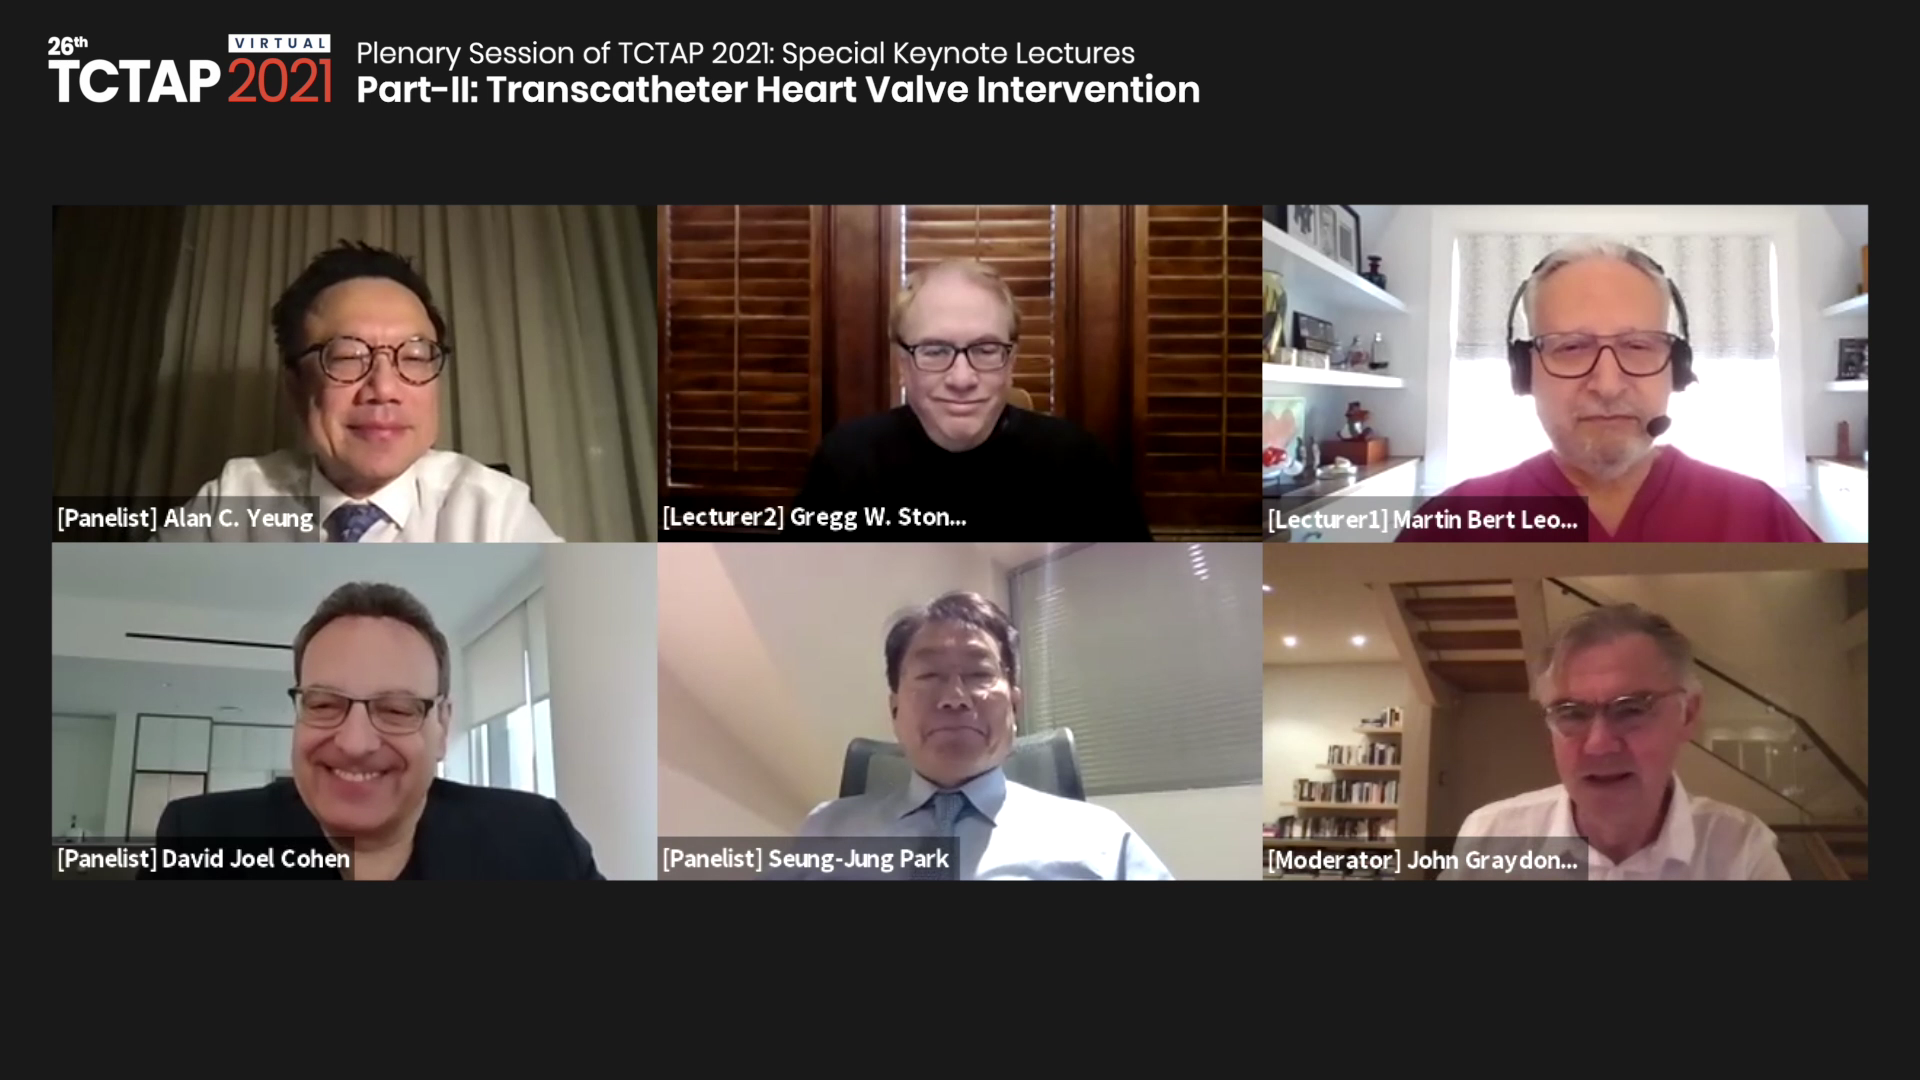 [TCTAP 2021 Virtual] Plenary Session of TCTAP 2021: Special Keynote Lectures - Part-II: Transcatheter Heart Valve Intervention